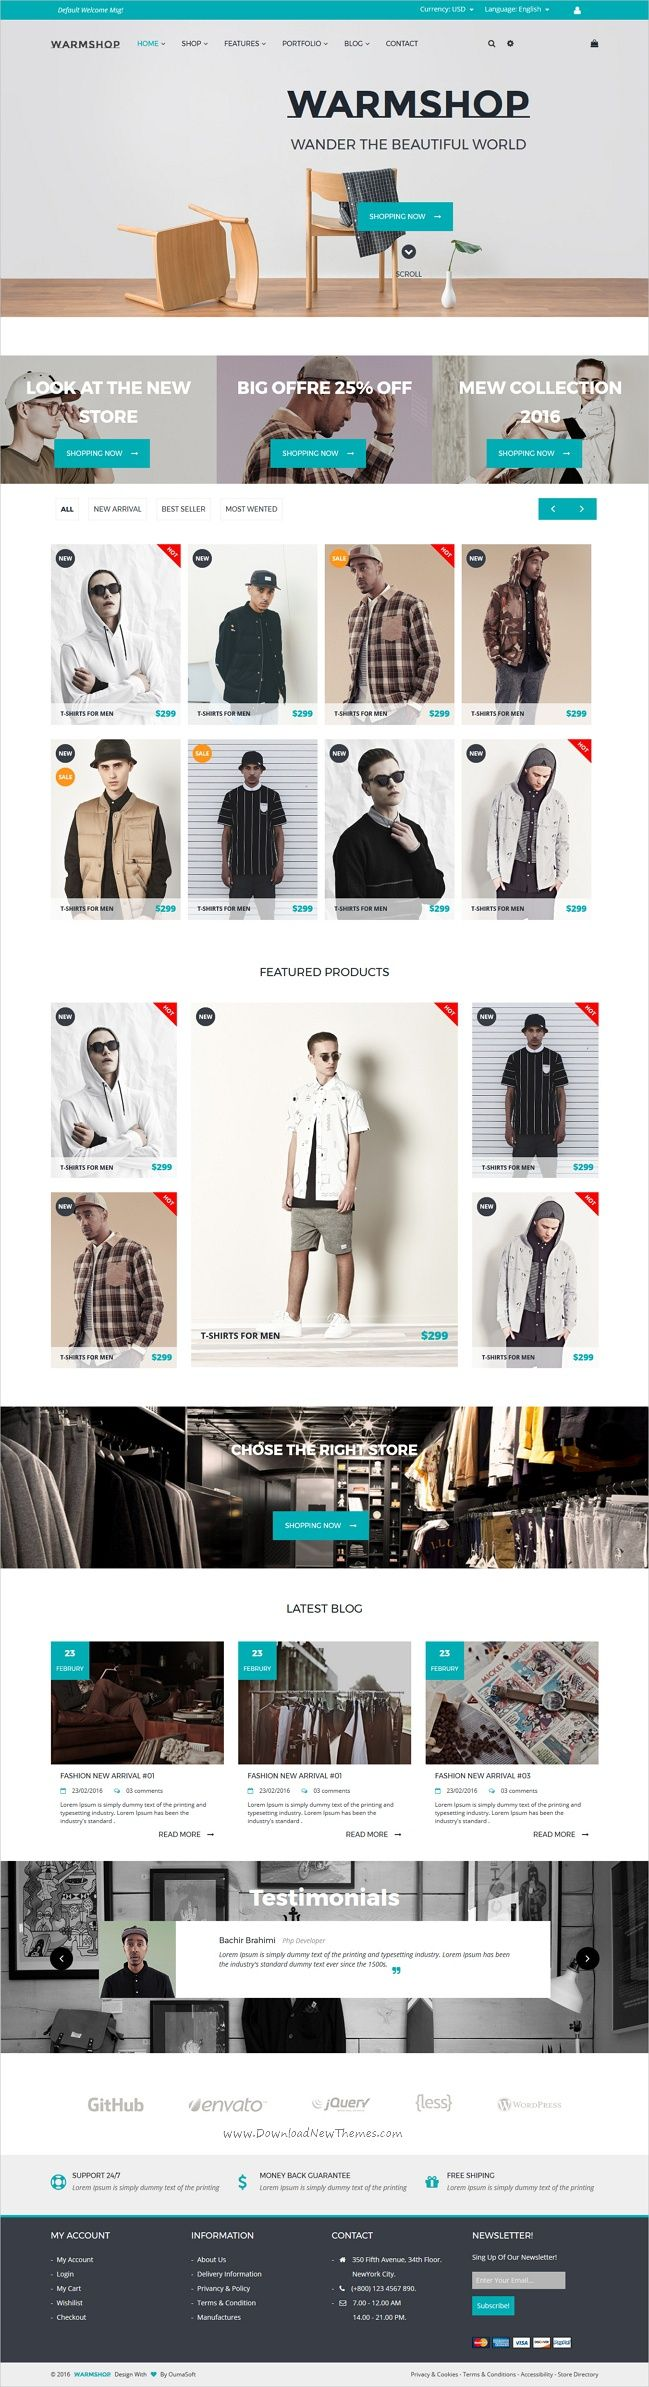 warmshop is a minimal design 3in1 responsive html5 bootstrap template for modern ecommerce